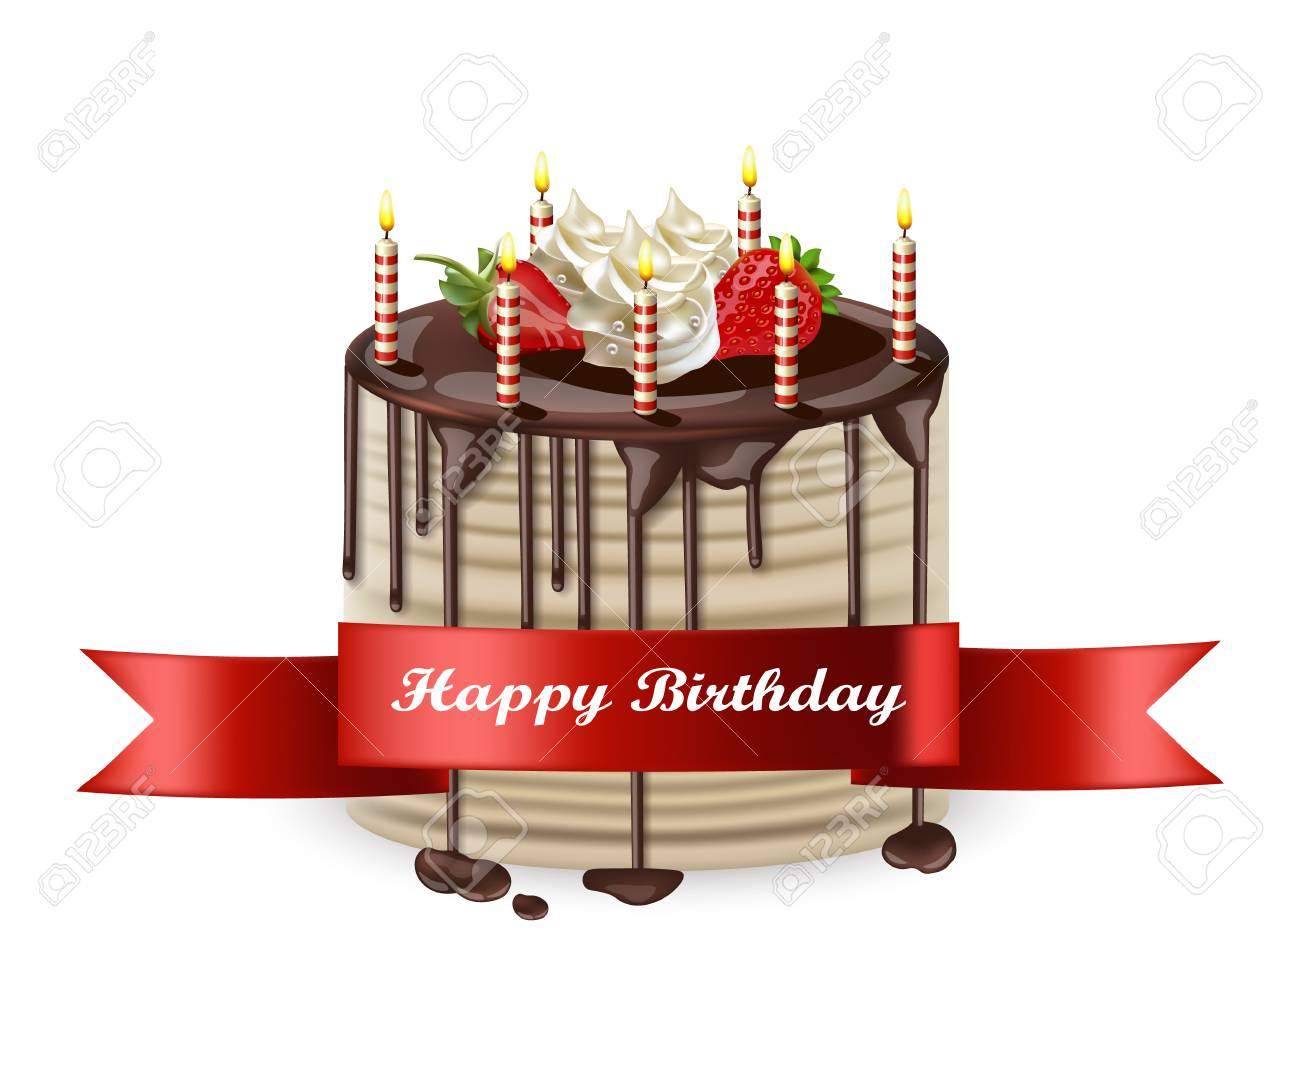 Happy Birthday Cake Vector Realistic 3d Detailed Illustration Royalty Free Cliparts Vectors And Stock Illustration Image 99728005